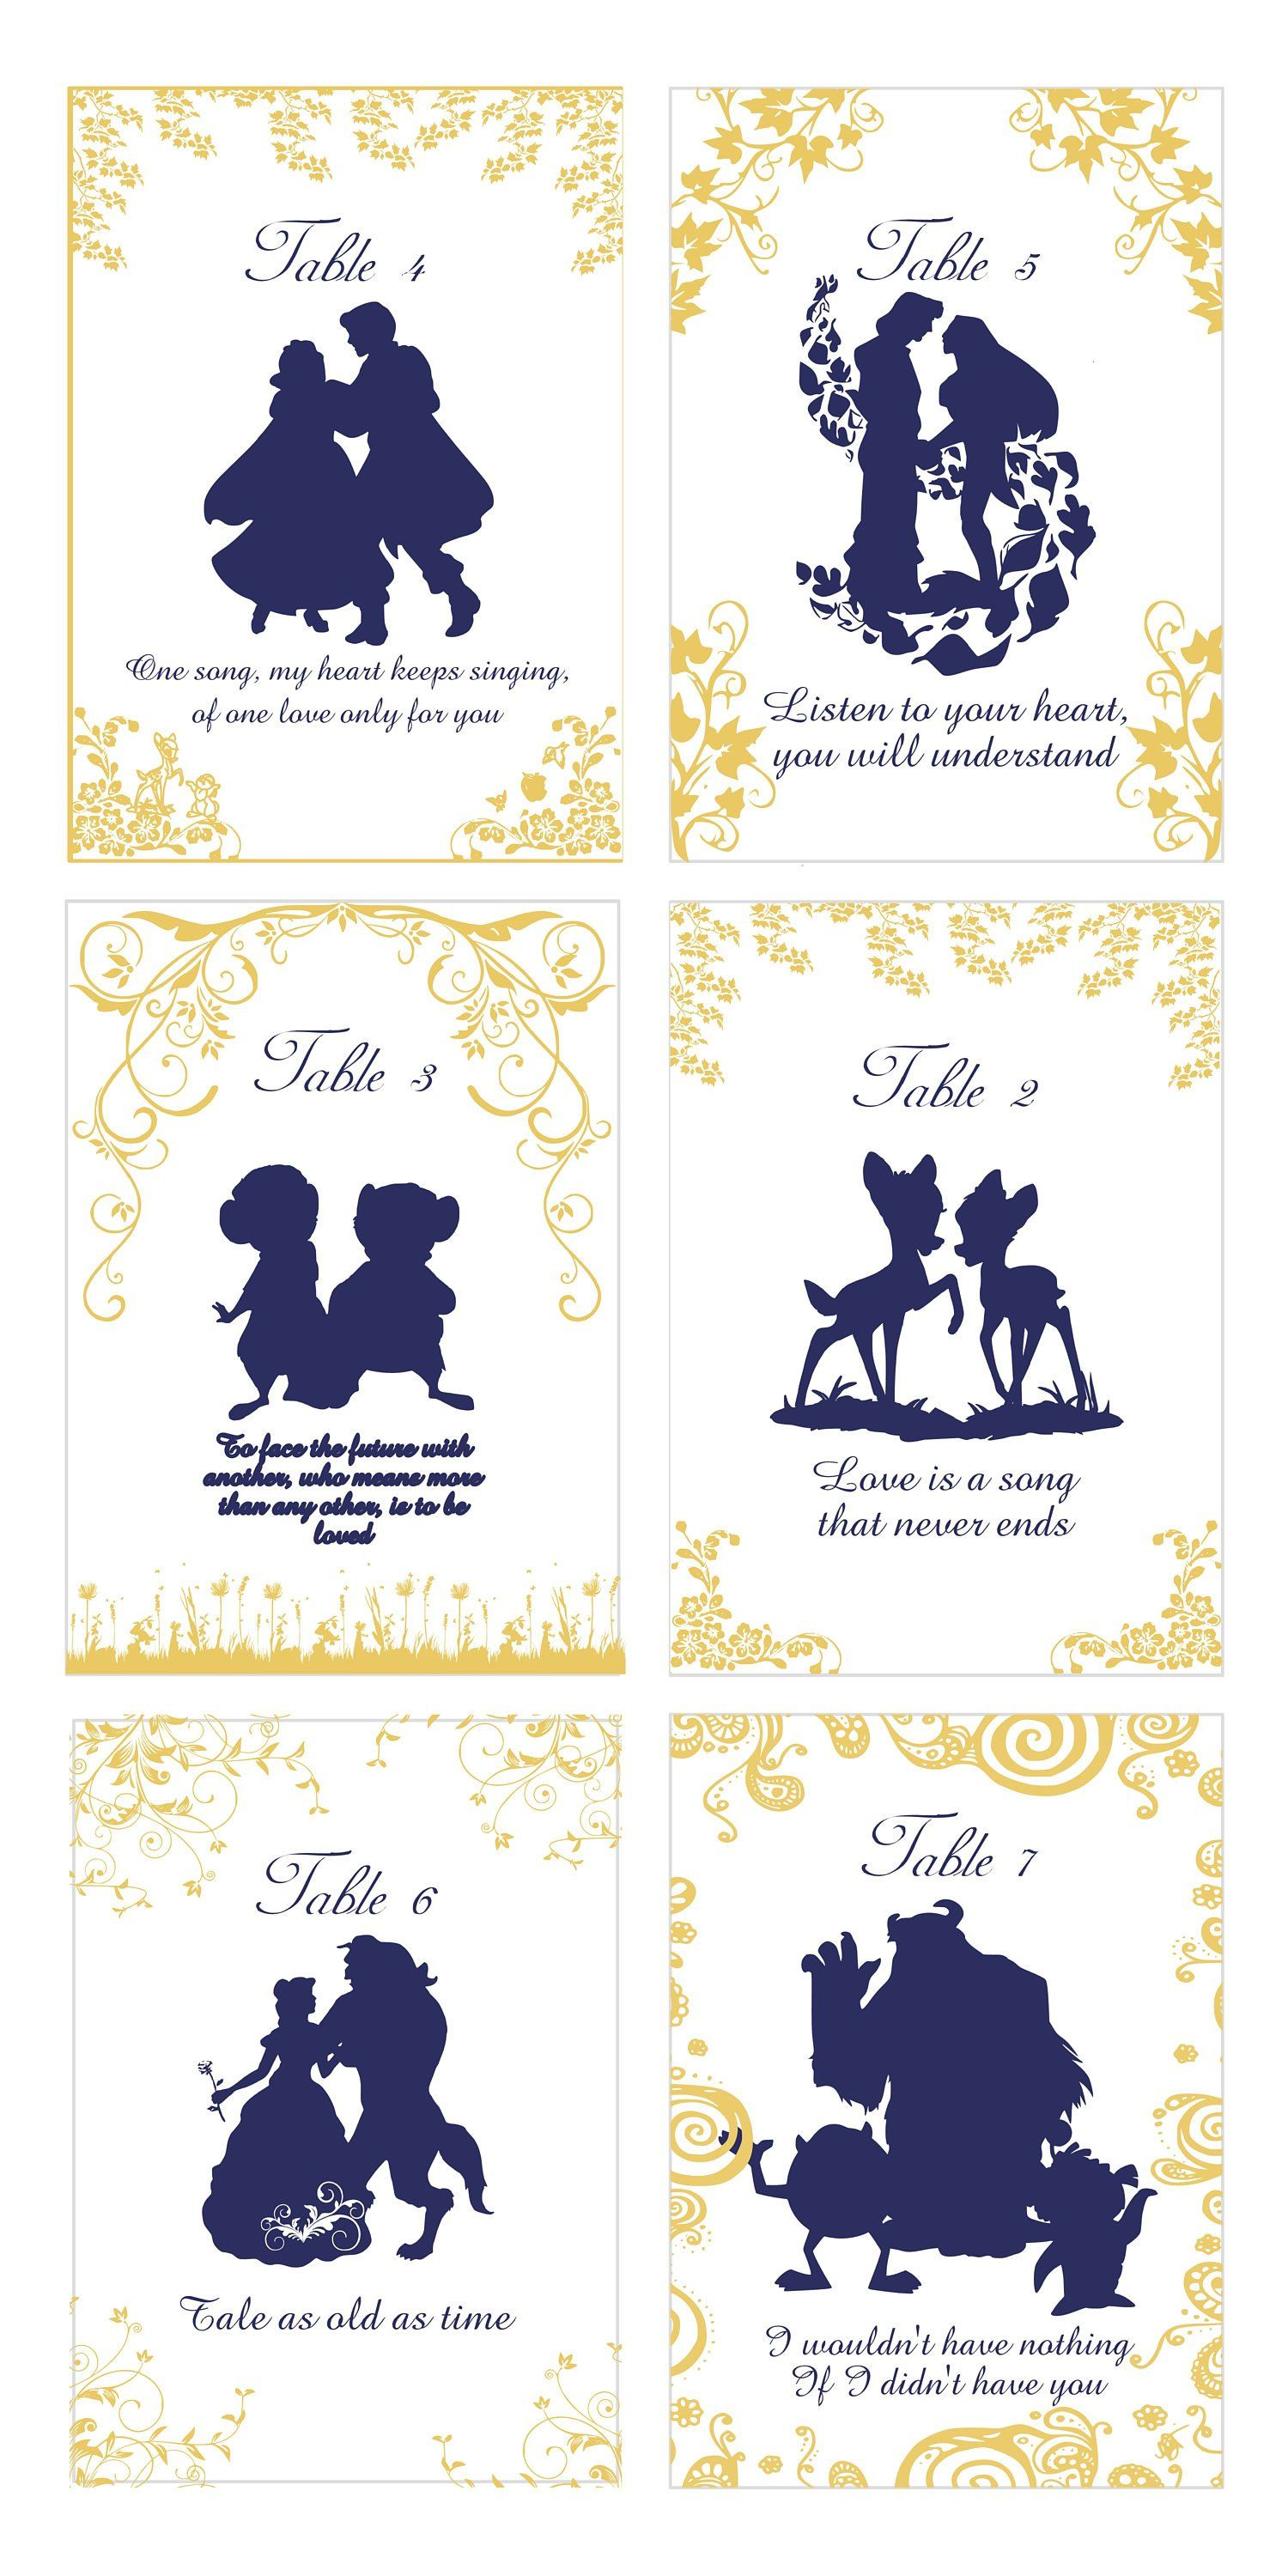 Story Book Quotable Table Numbers | Quotable Table Cards | Birthday Quotable Table Cards #howtosing